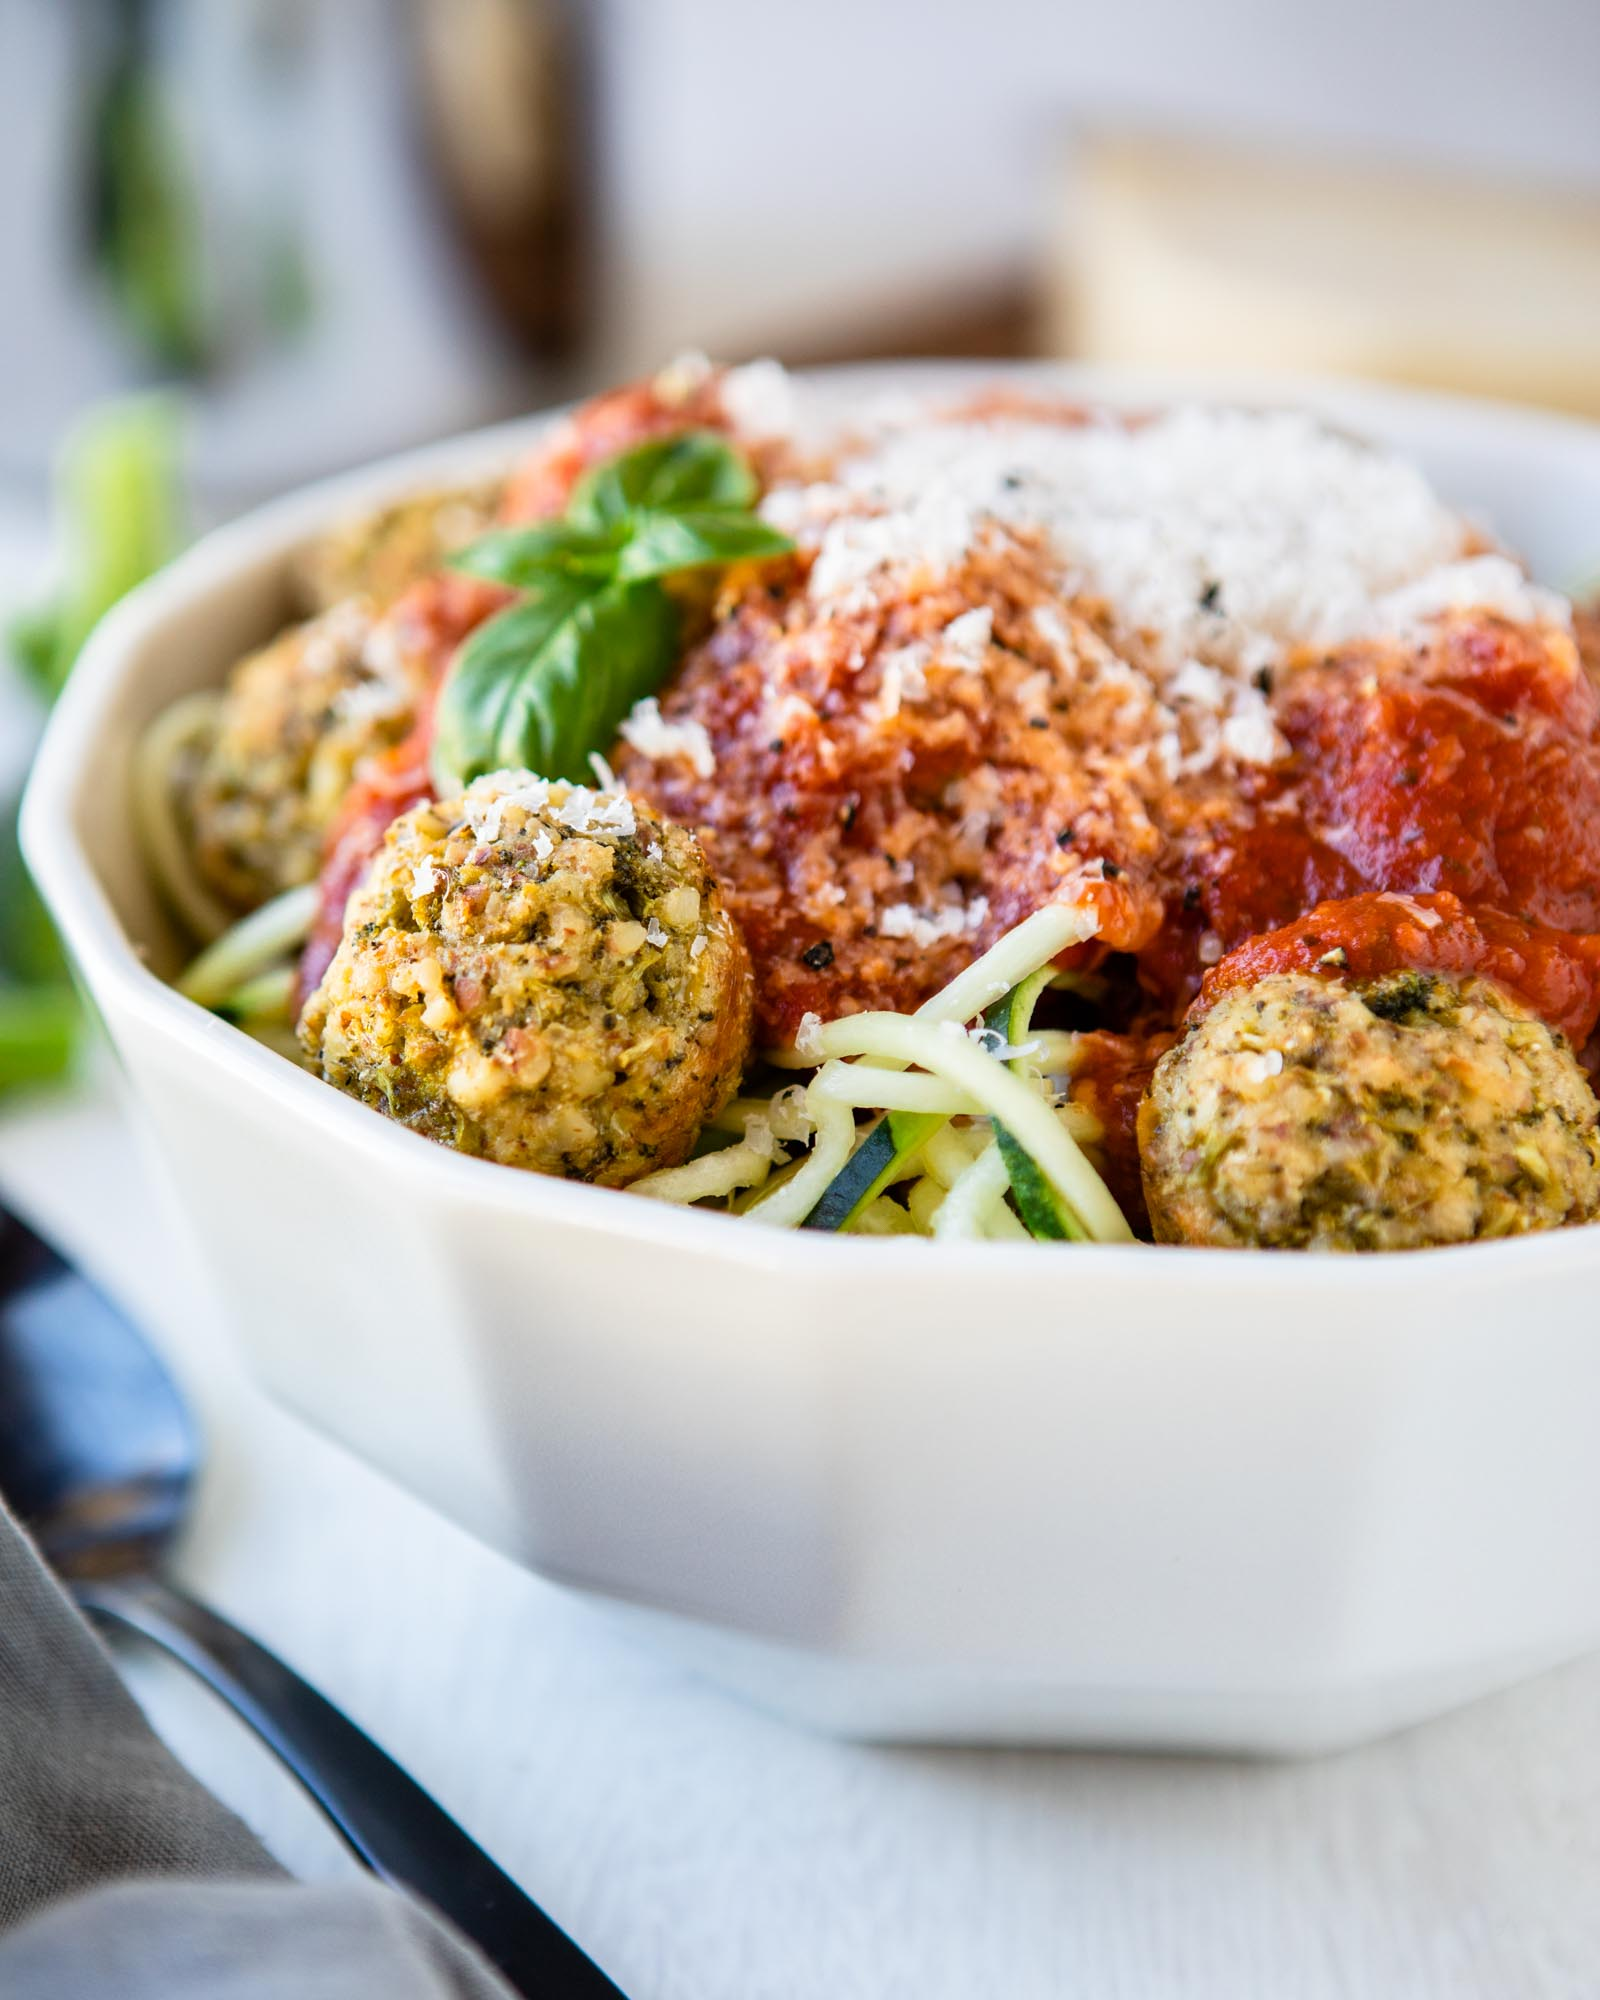 Our Favorite Meatless Meatballs - And Hey, They're Keto Too!